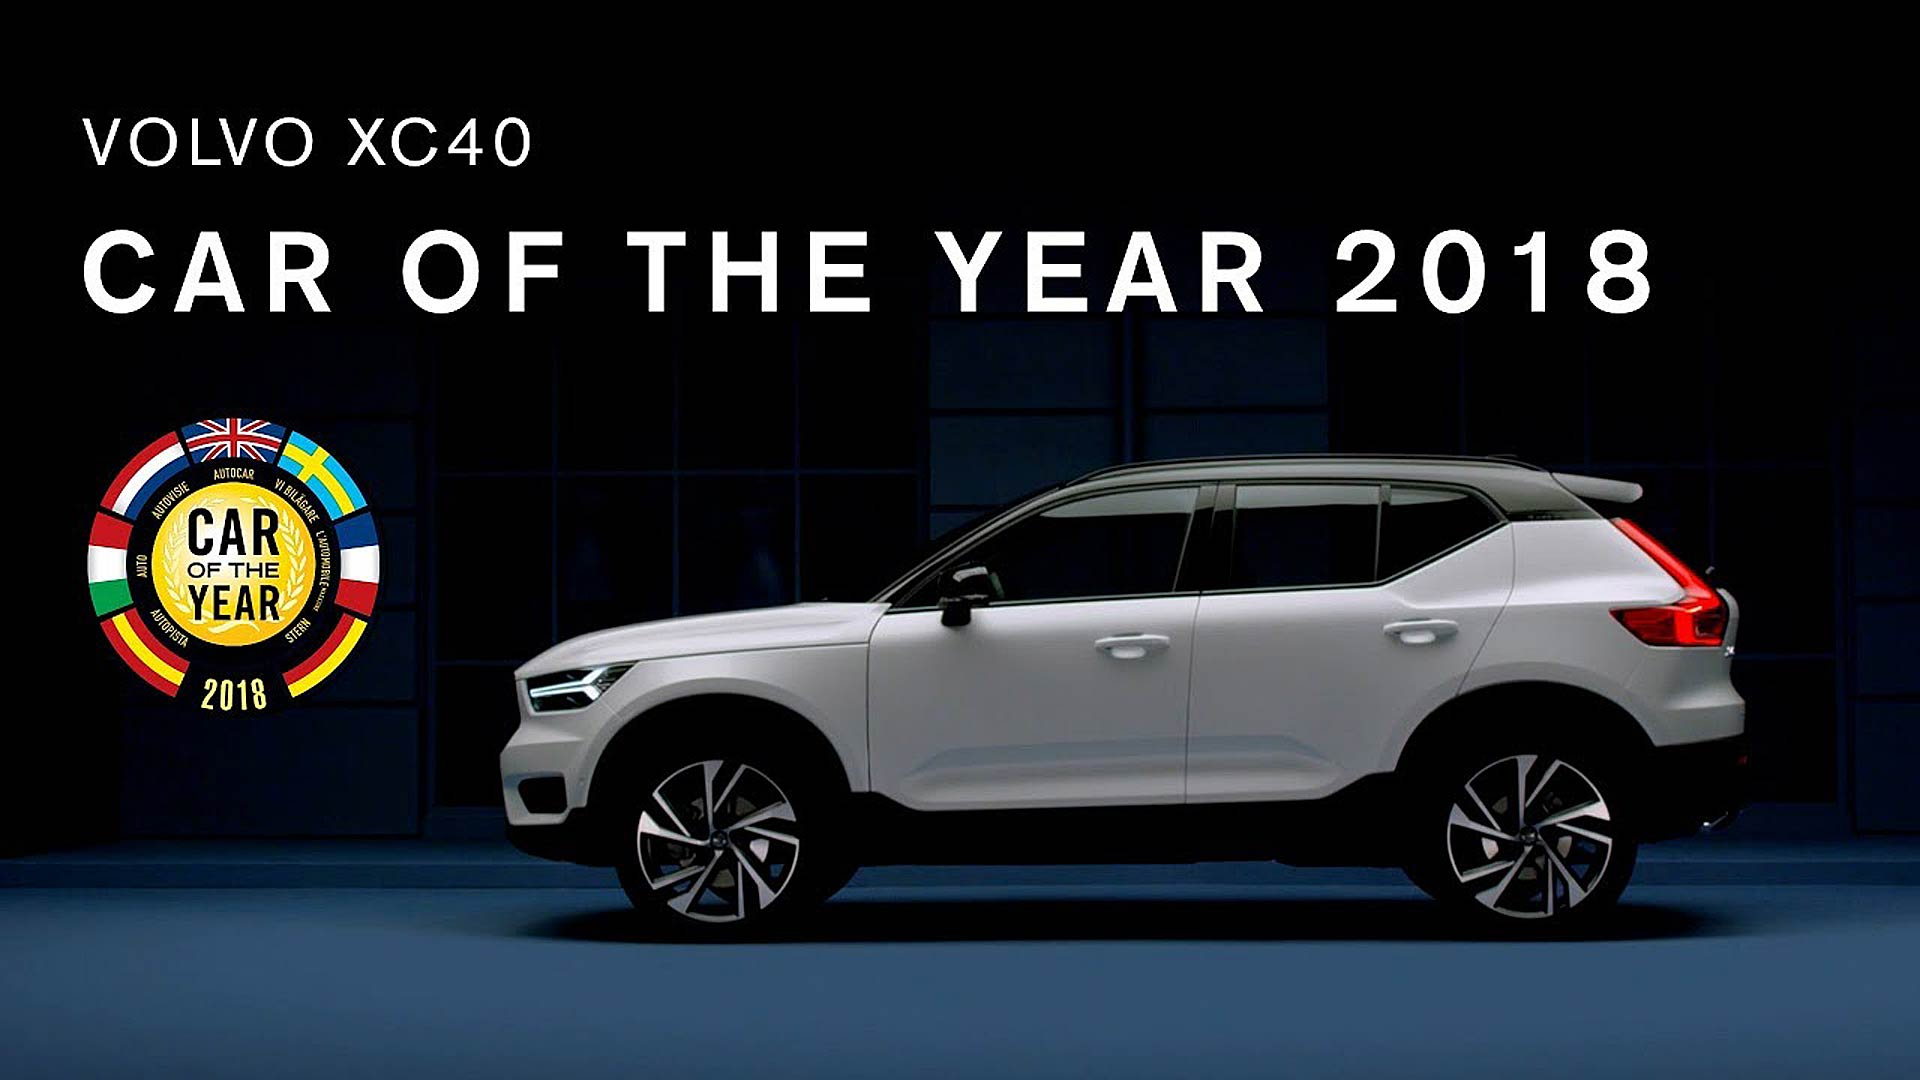 Volvo XC40 vincitrice dell'edizione 2018 del Car of The Year